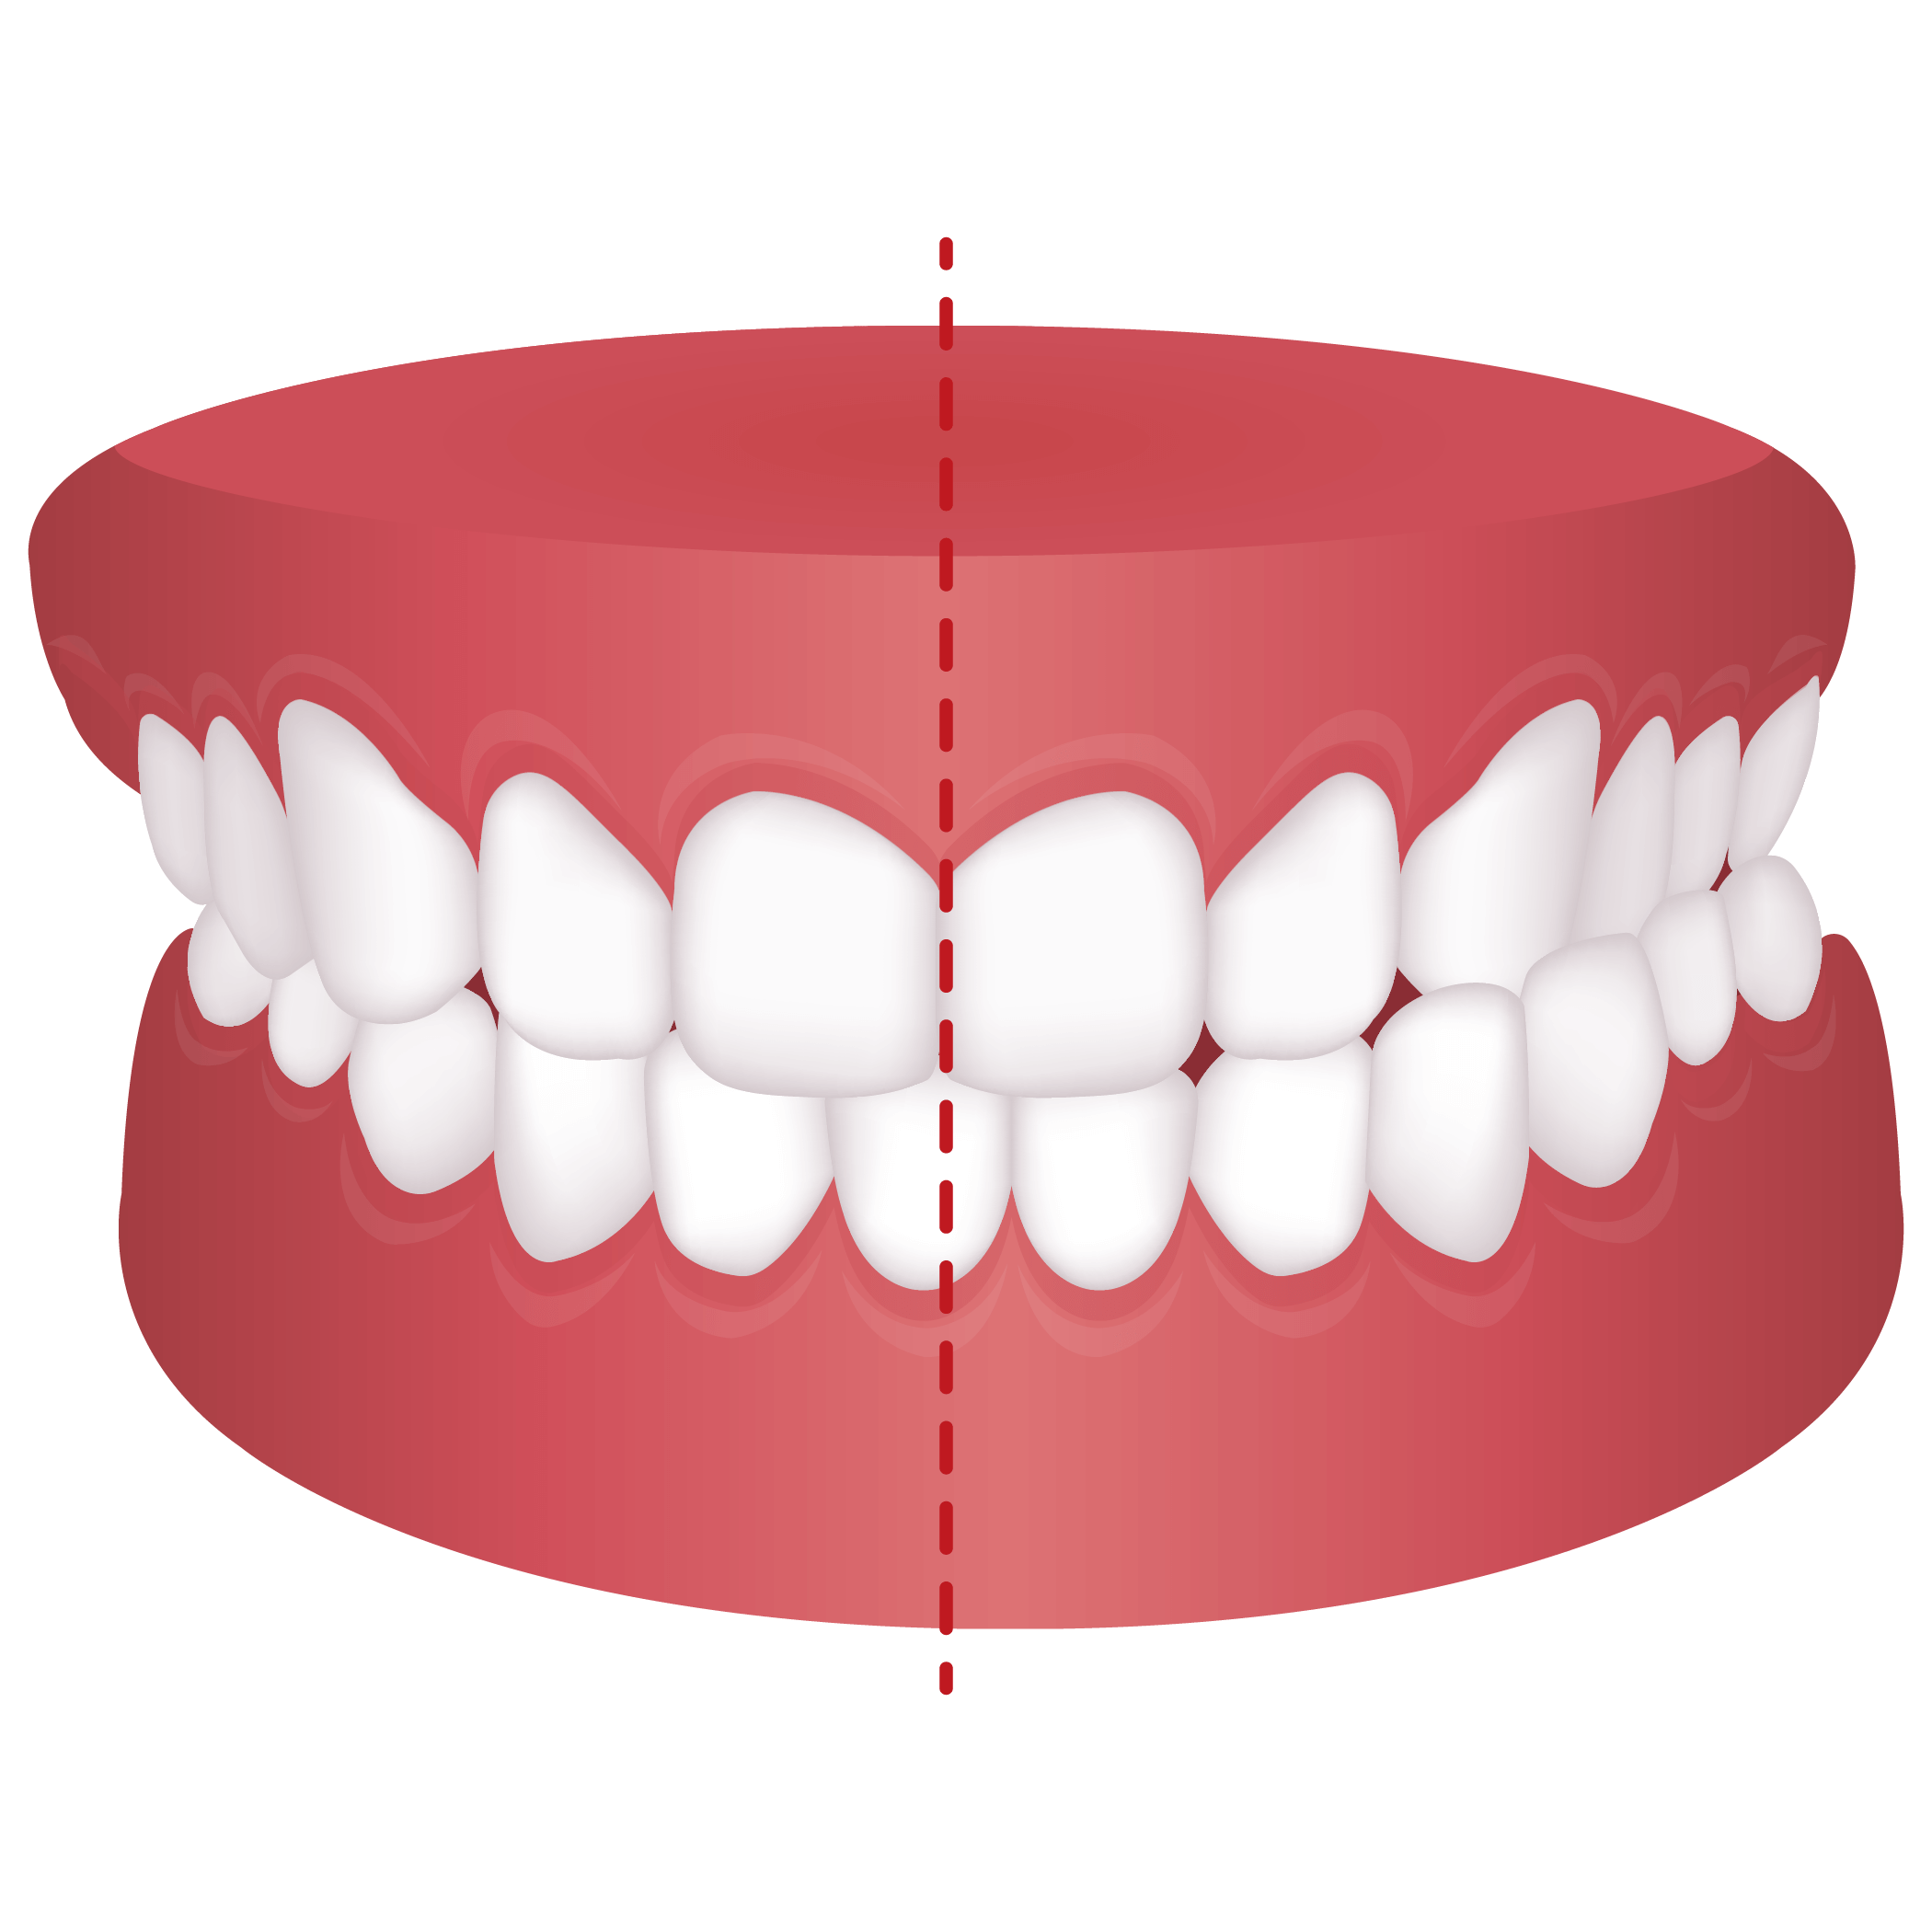 Mouth with crossbite